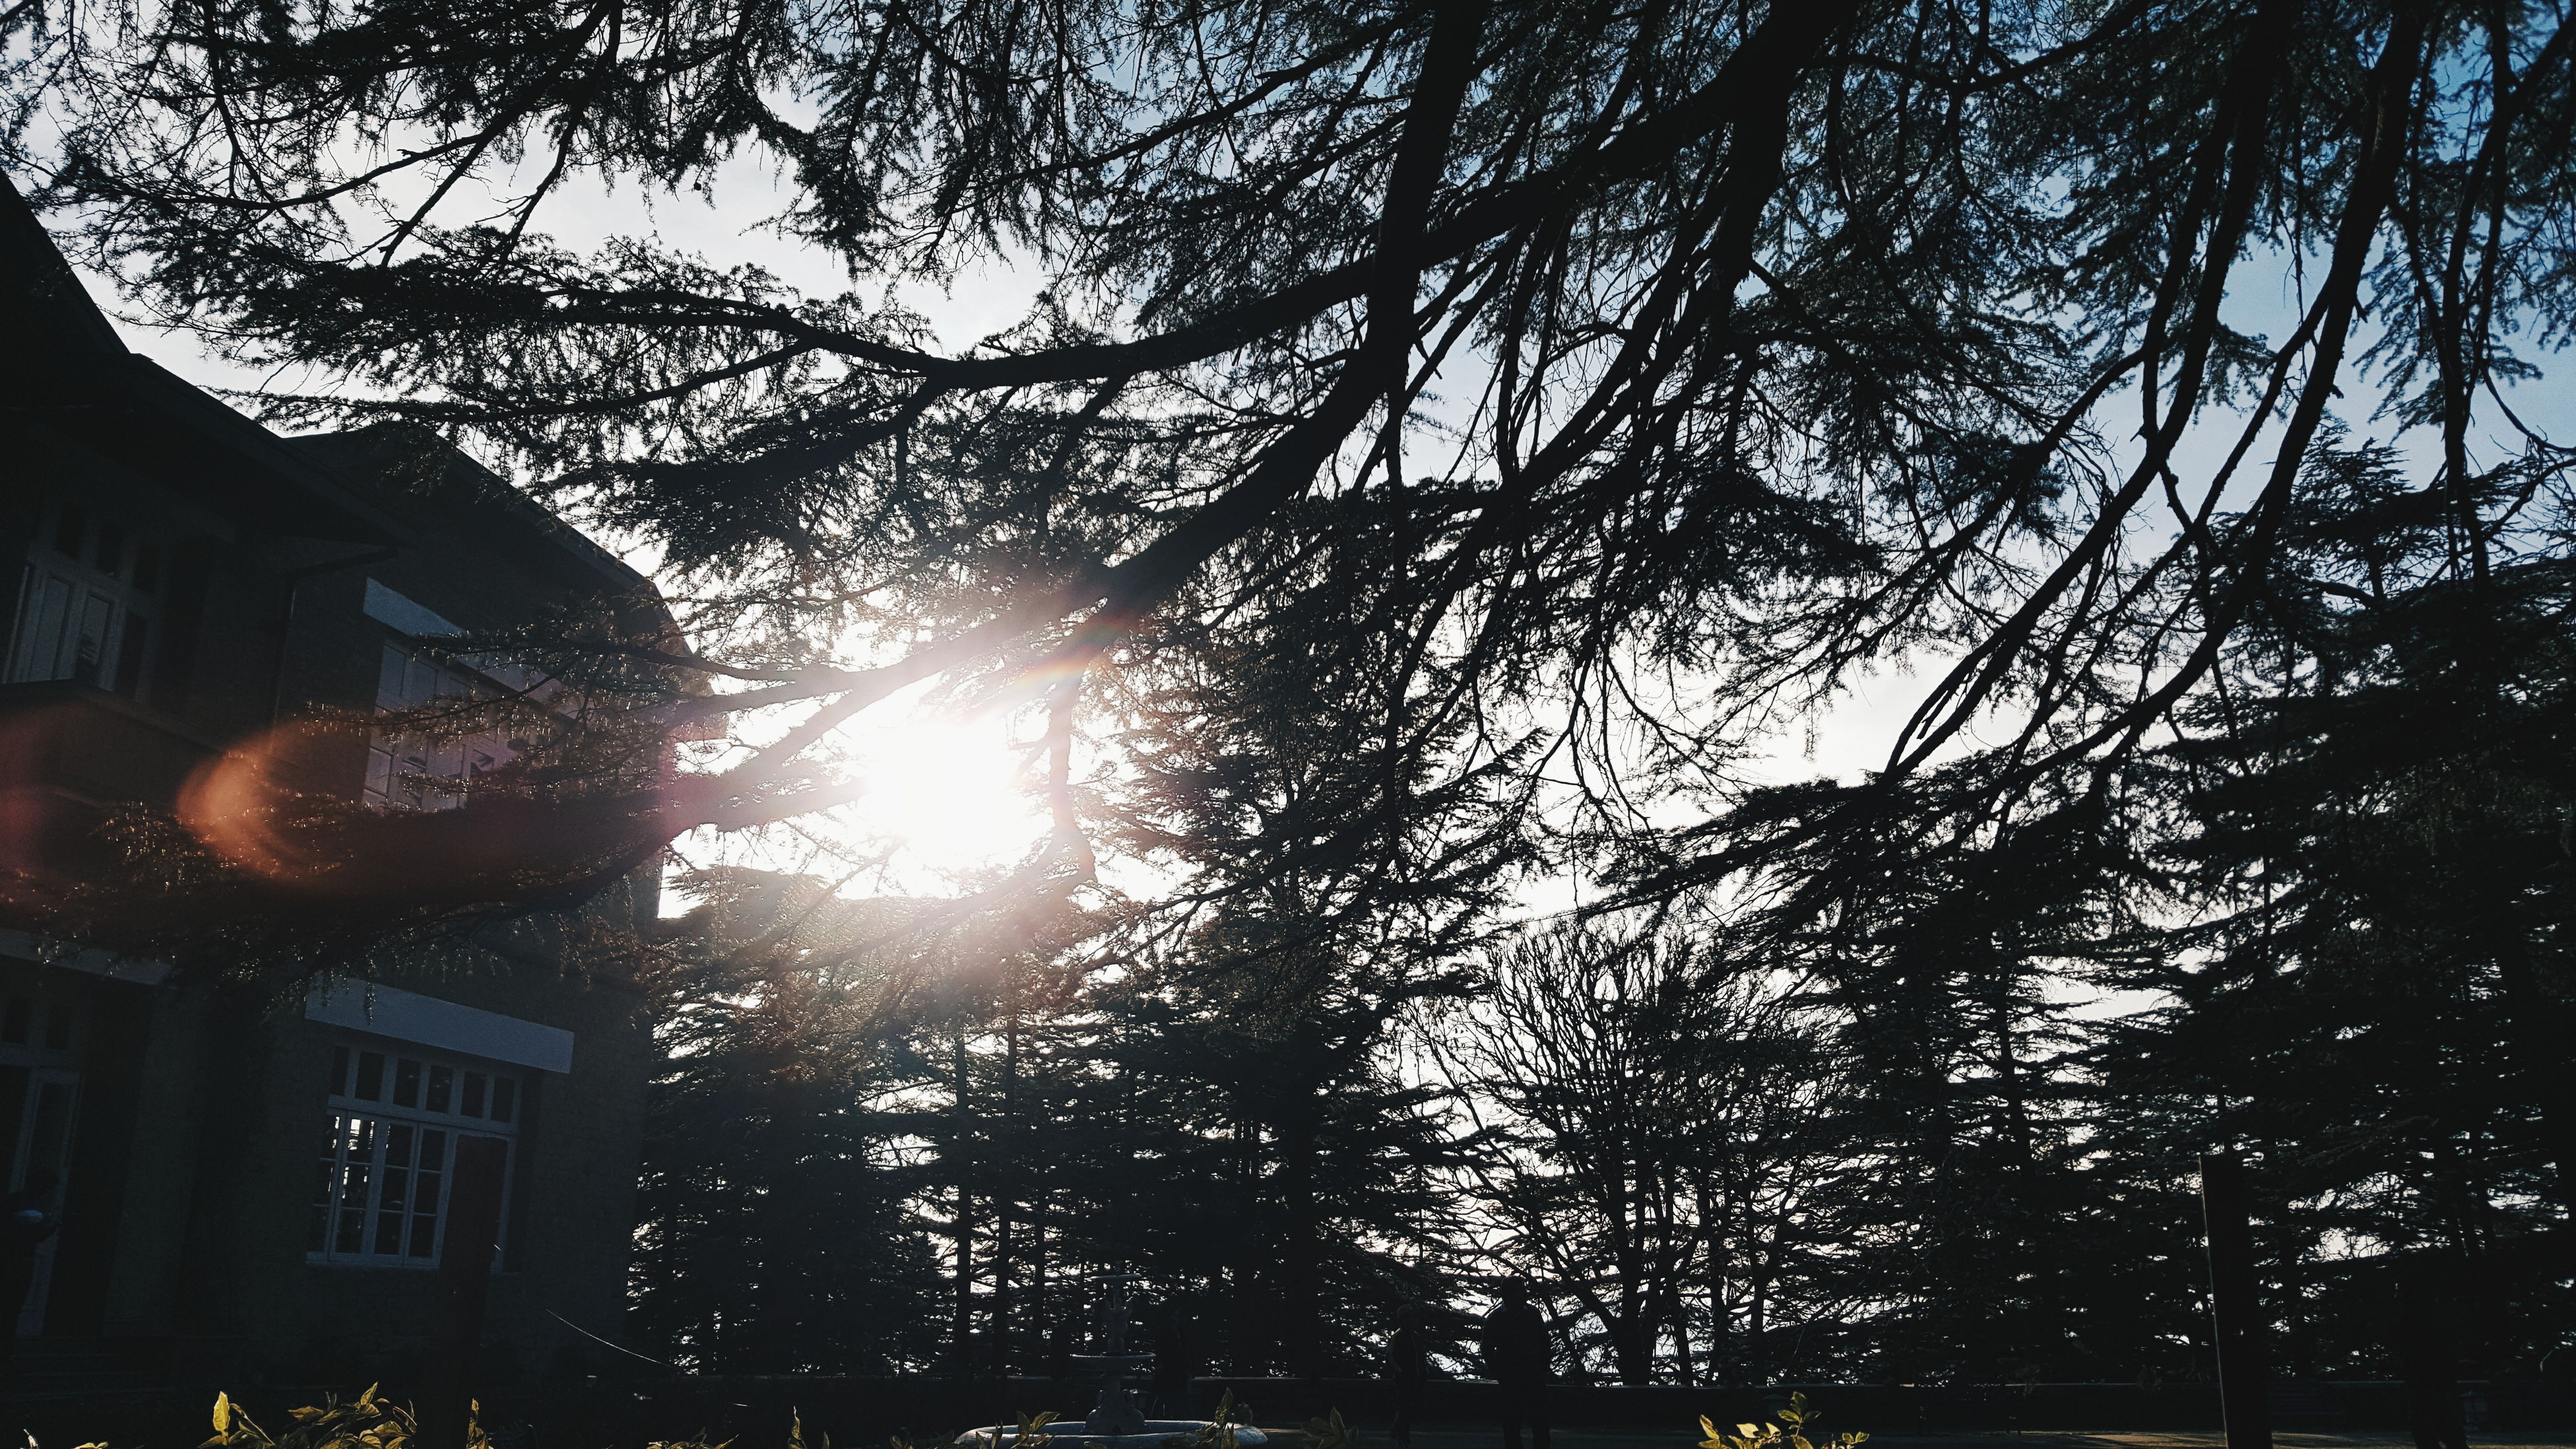 VSCO VSCO Cam Vscocam Vscodaily Smartphone Photography Smartphonephotography Samsung Galaxy S6 Camera Samsung Galaxy S6 Edge Trees And Nature Trees Collection Trees And Sun Sunlight Sunlight And Trees Nature Photography Nature_collection Shimla India DaryllSwer EyeEm Selects